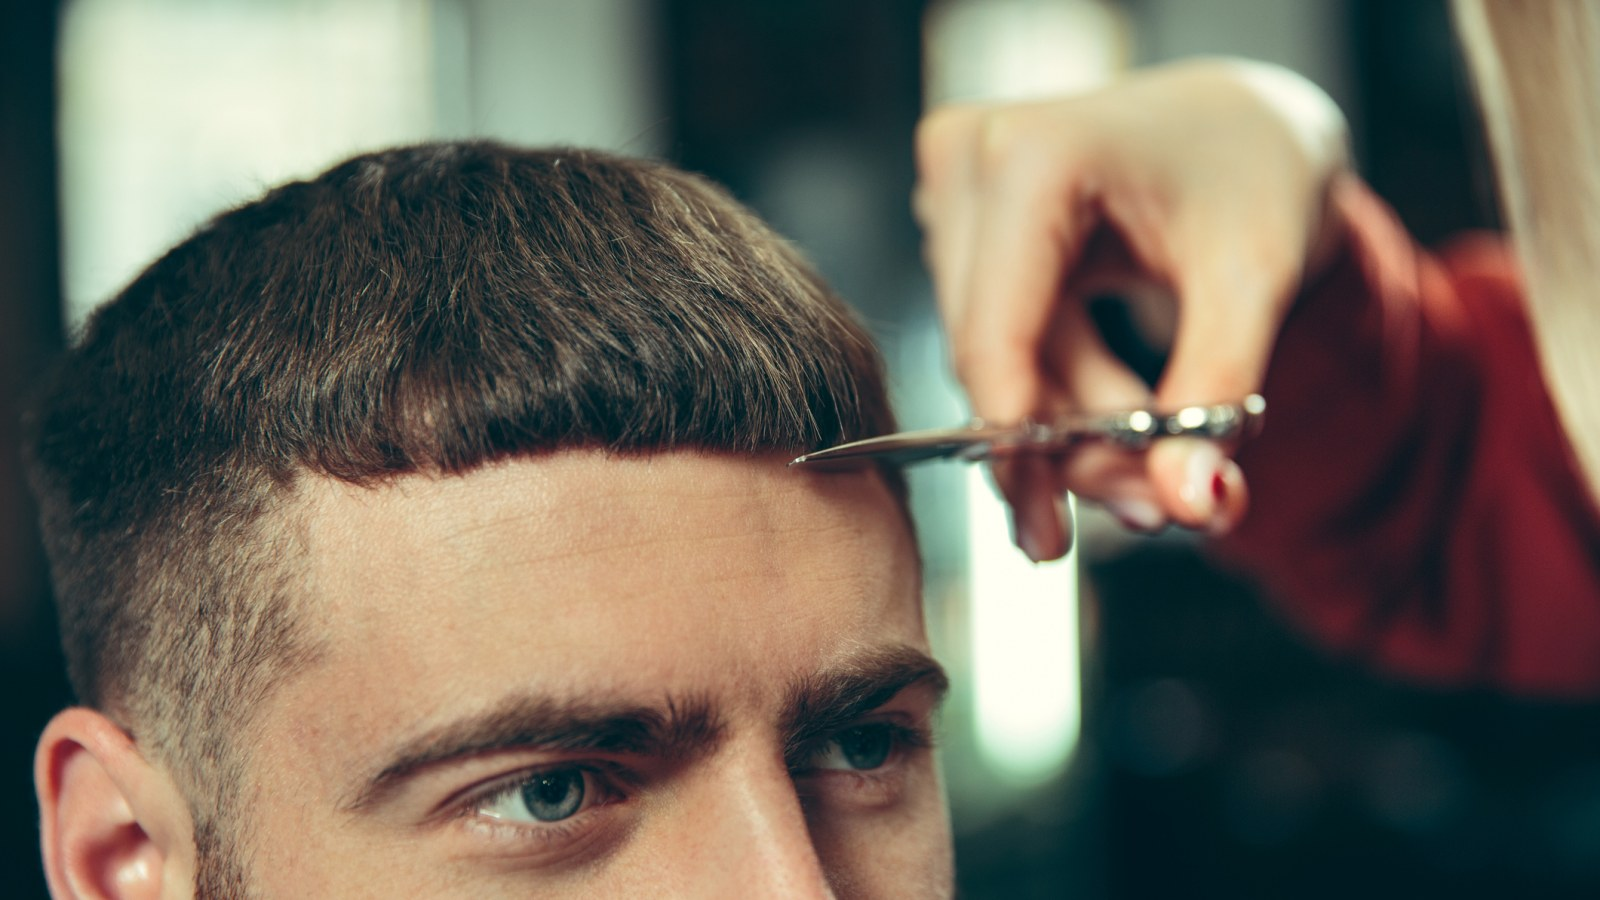 How To Cut Men S Hair At Home During The Coronavirus Outbreak